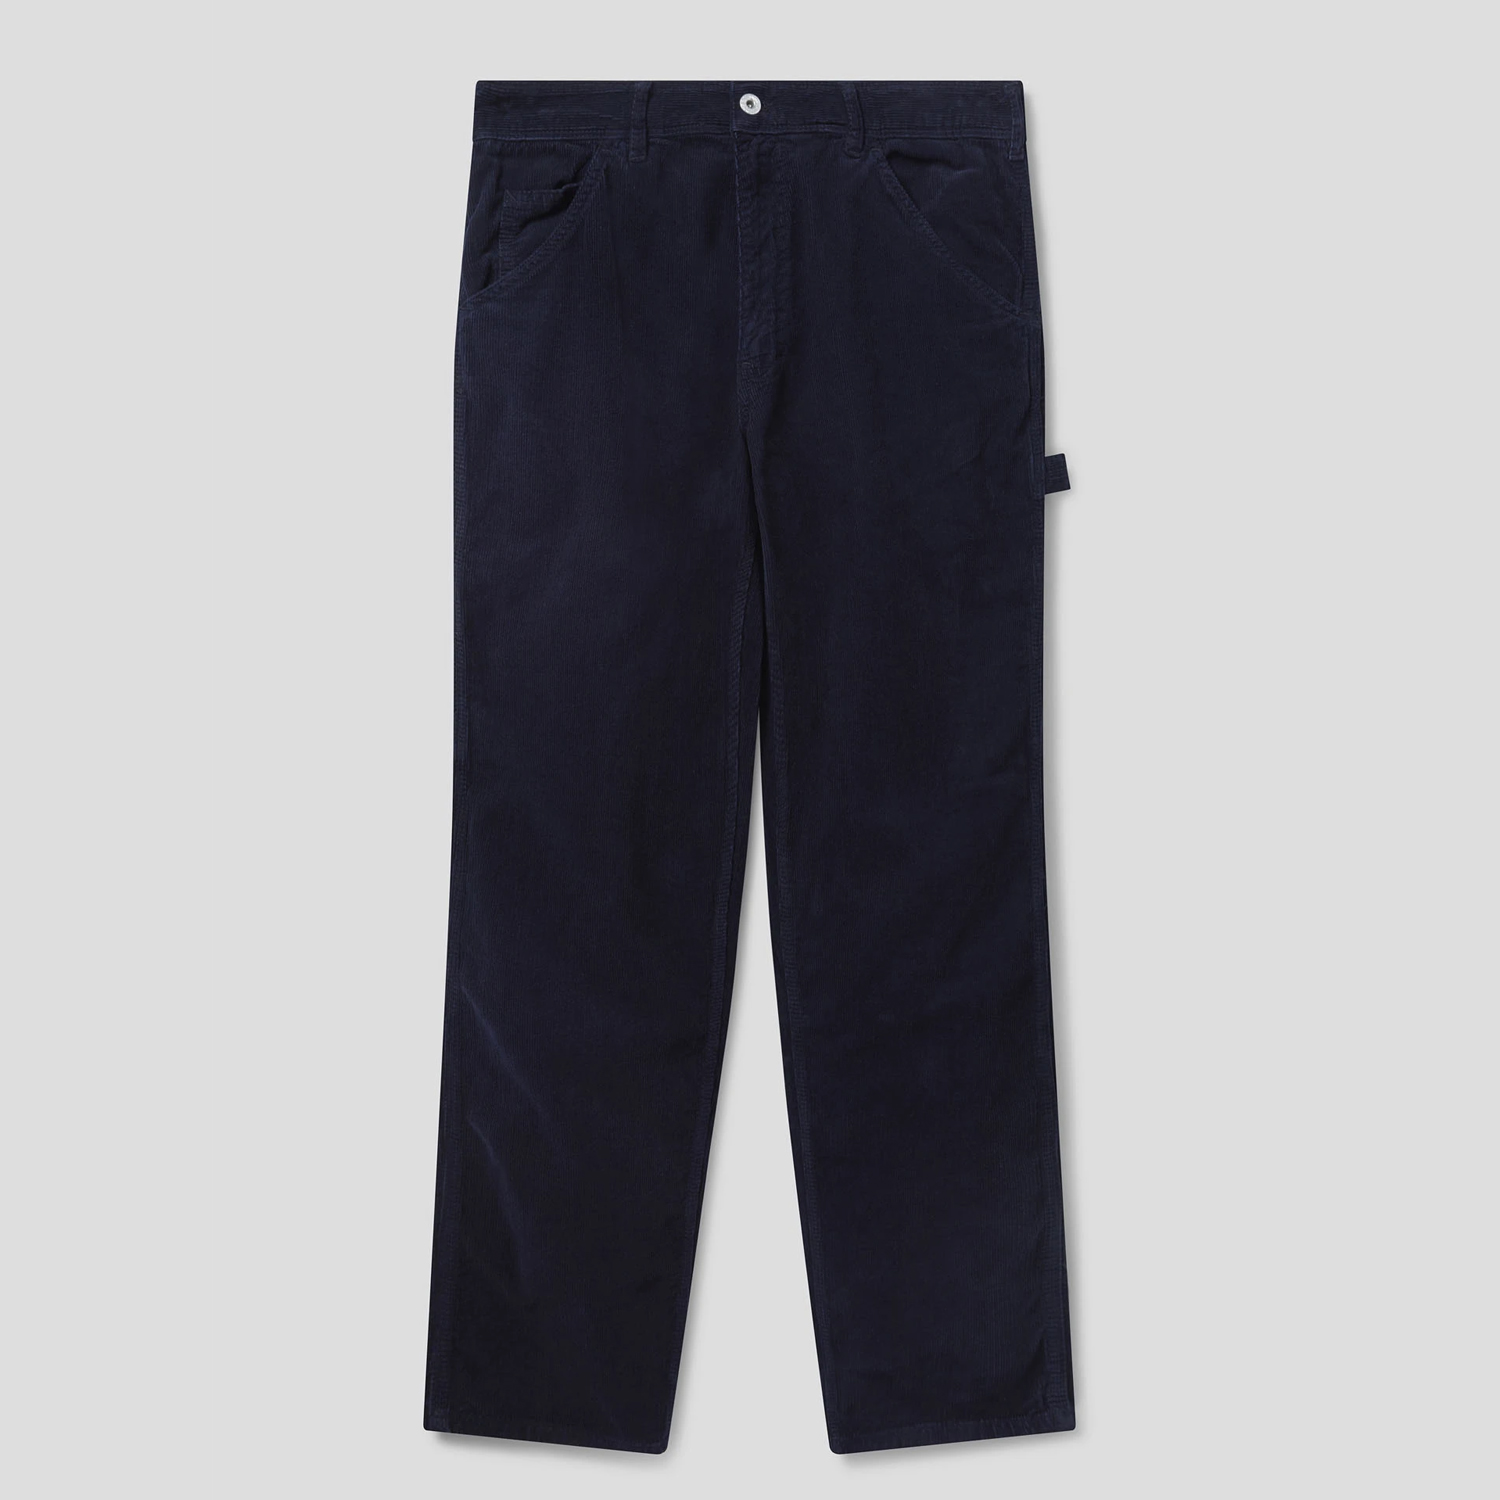 Stan Ray Cord Painter Pants- Navy- ON SALE